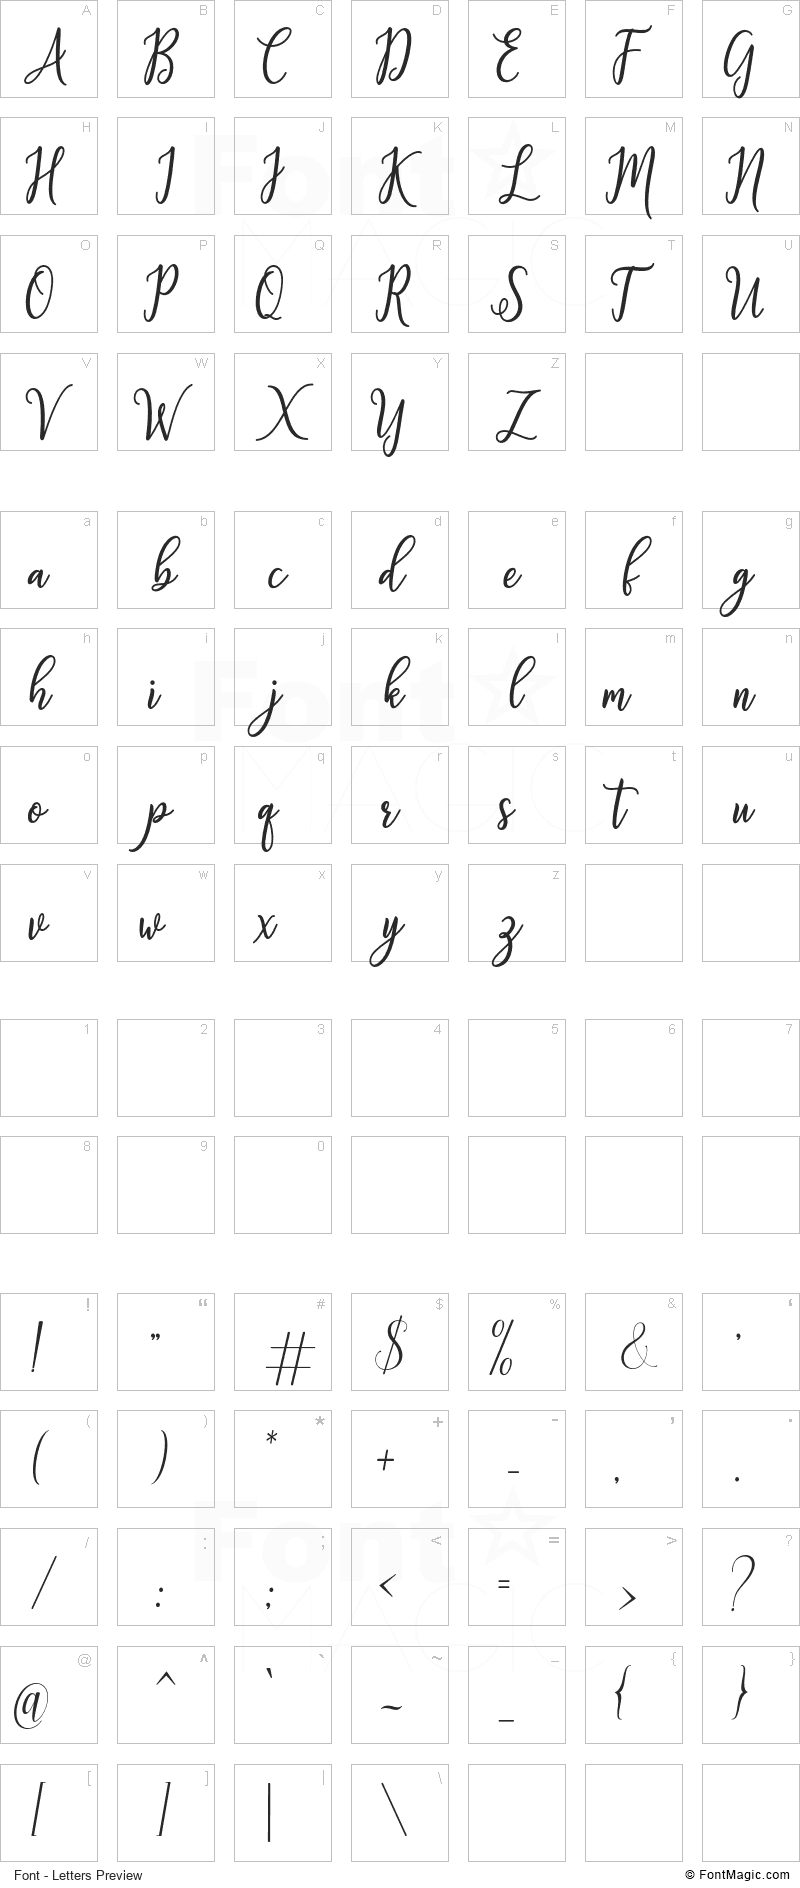 Fabulous Font - All Latters Preview Chart